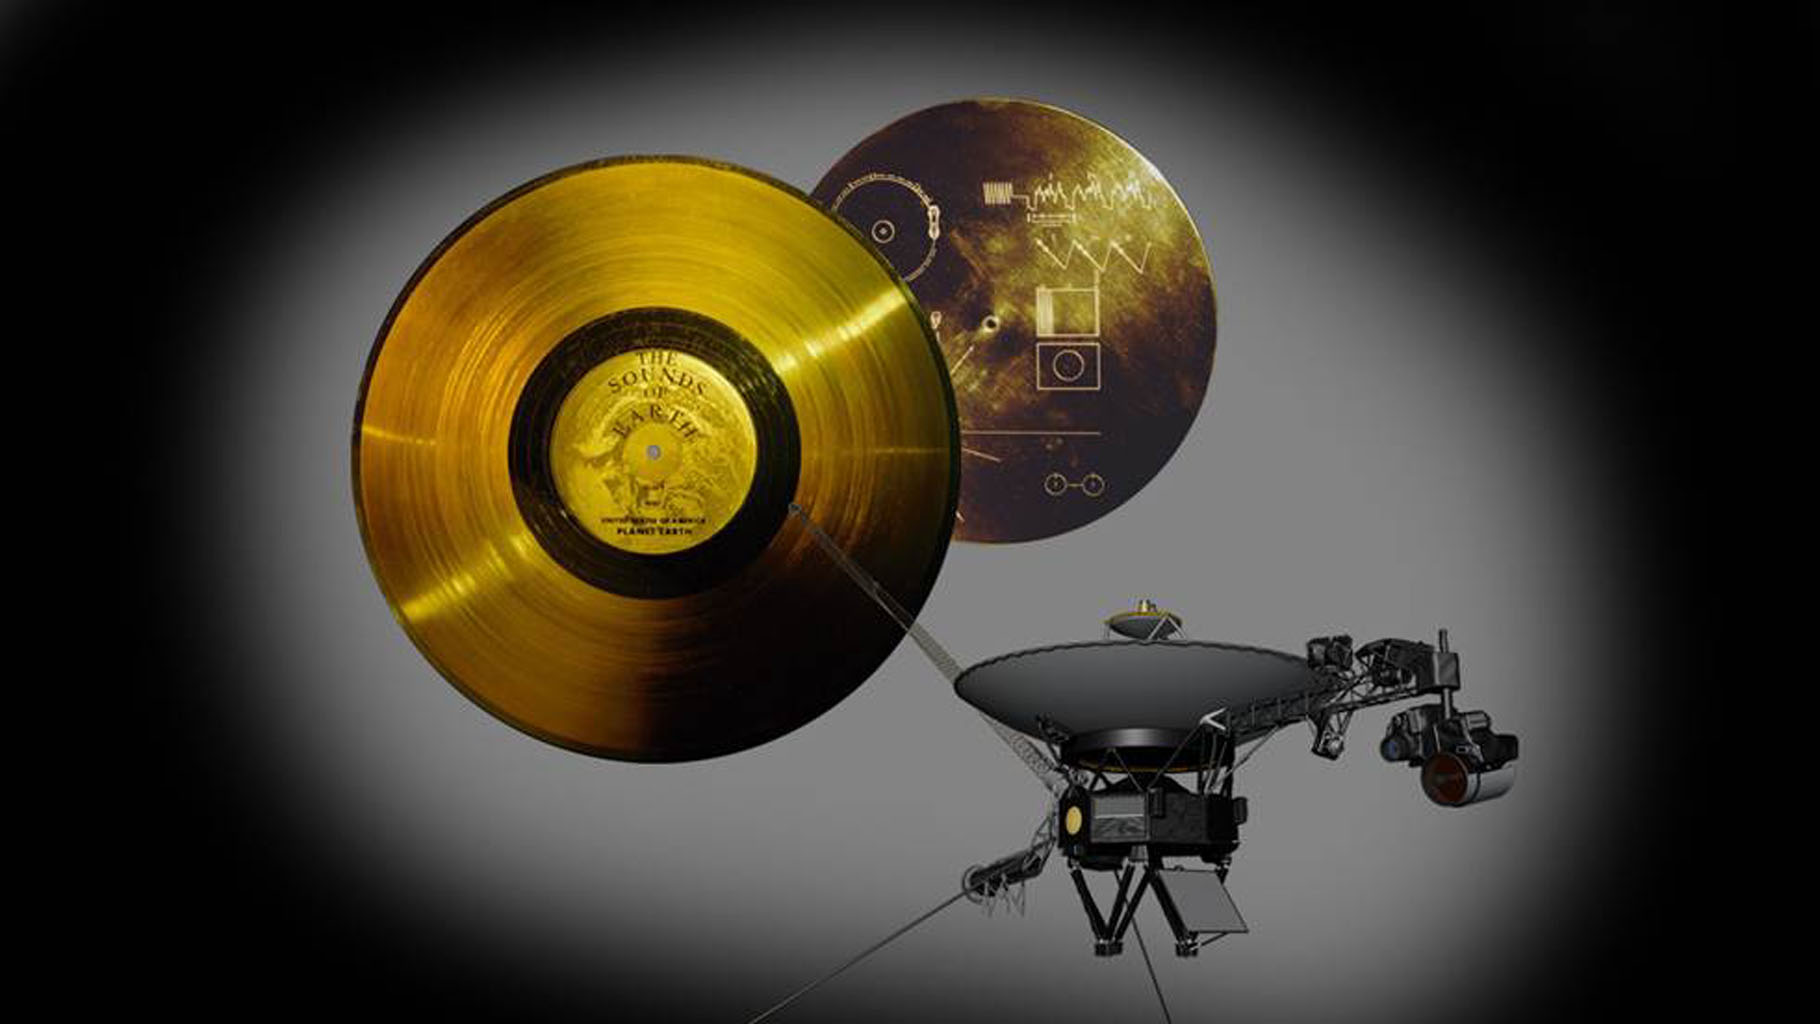 The Golden Record in Pictures: Voyager Probes' Message to Space Explained